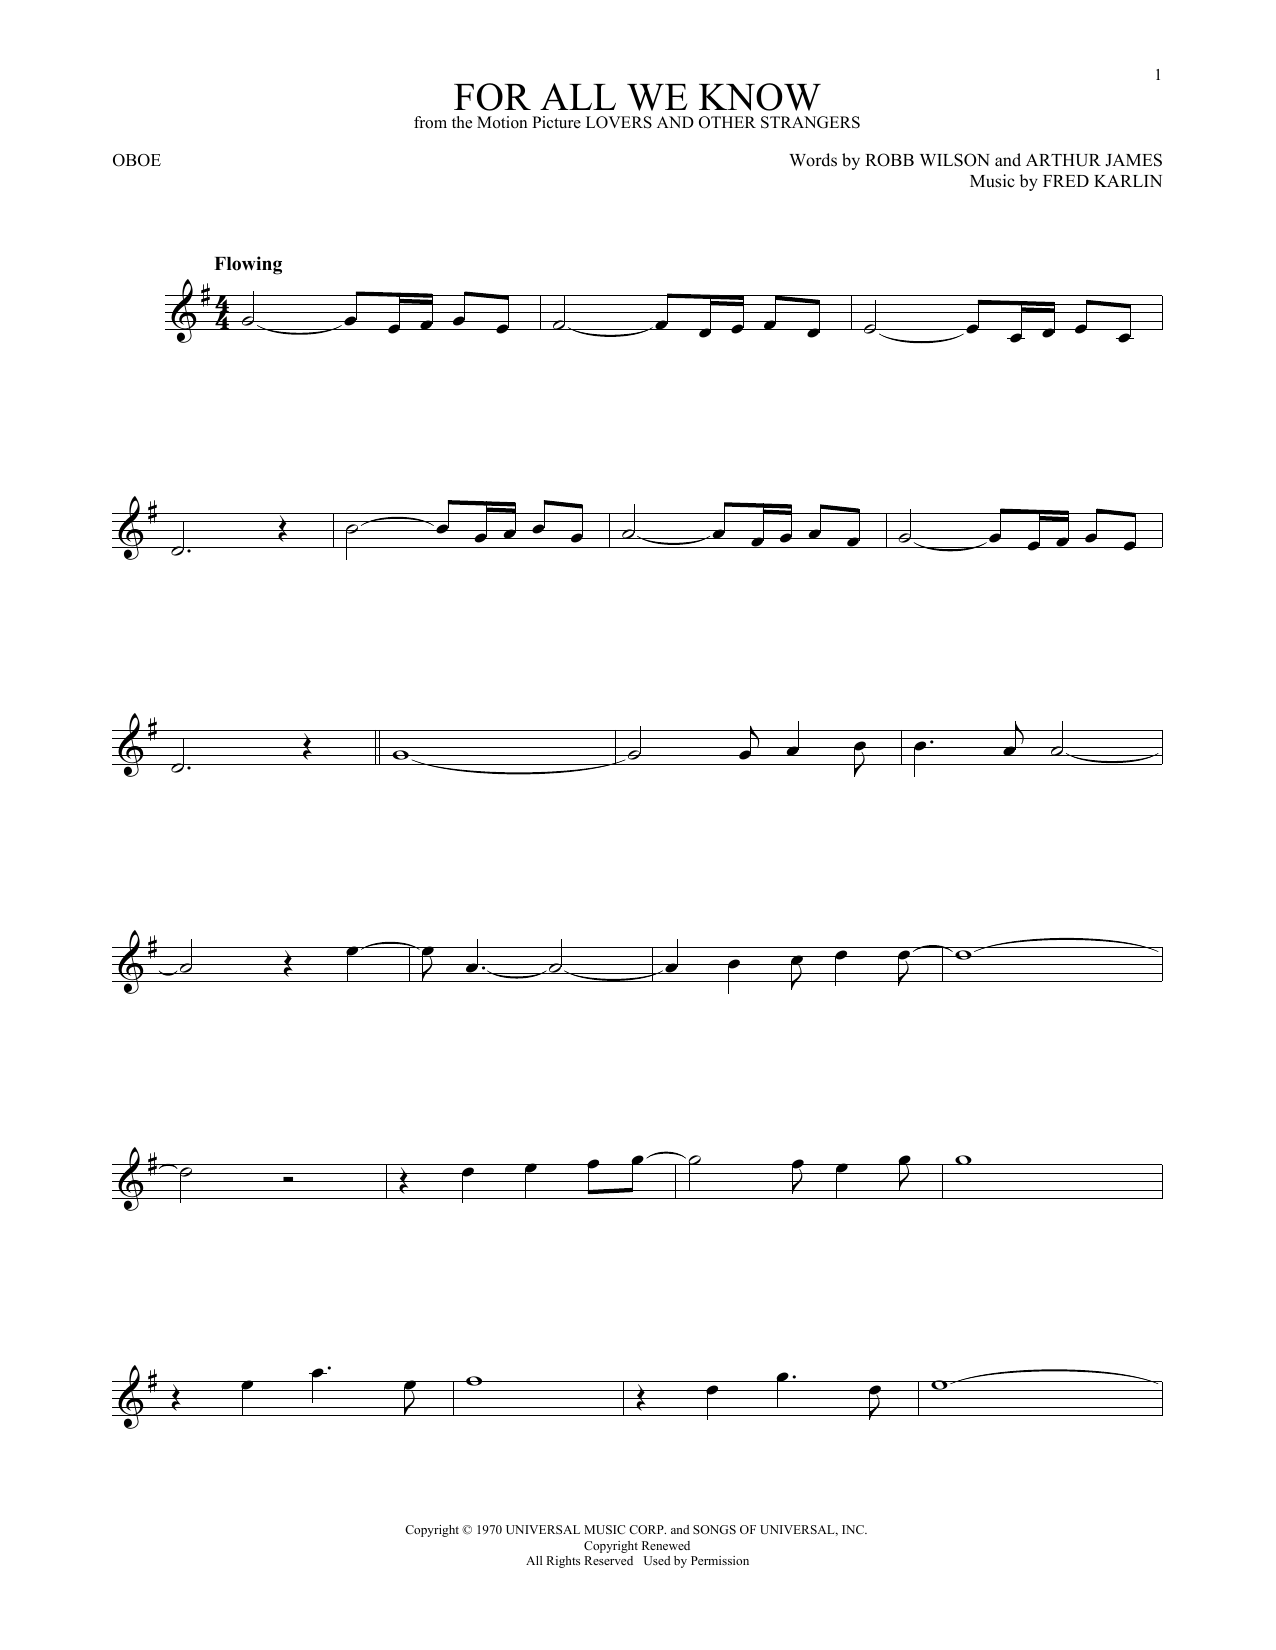 For All We Know (Oboe Solo)